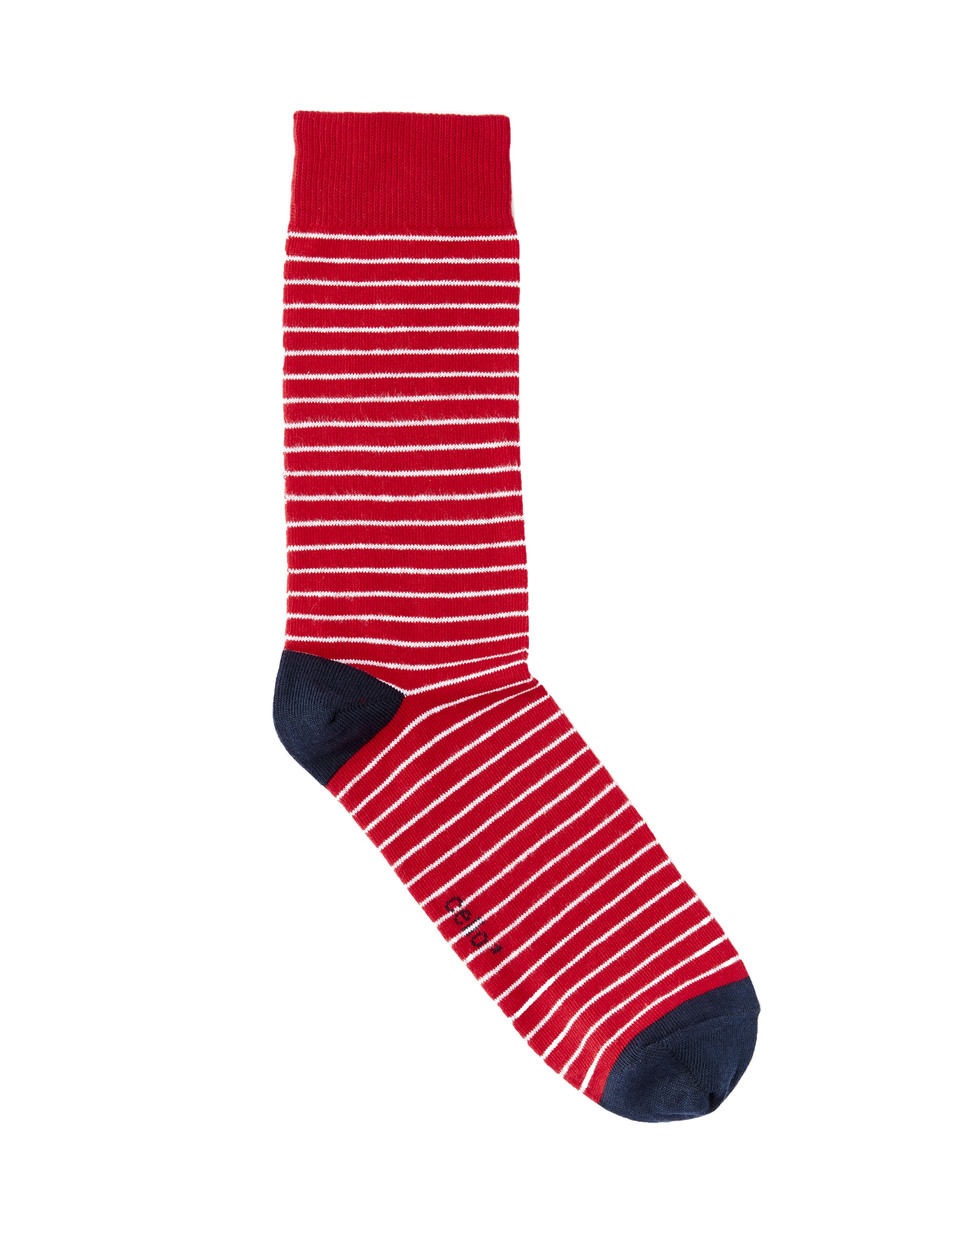 chaussettes fantaisies - MINEA_RED - Image à plat - Celio France